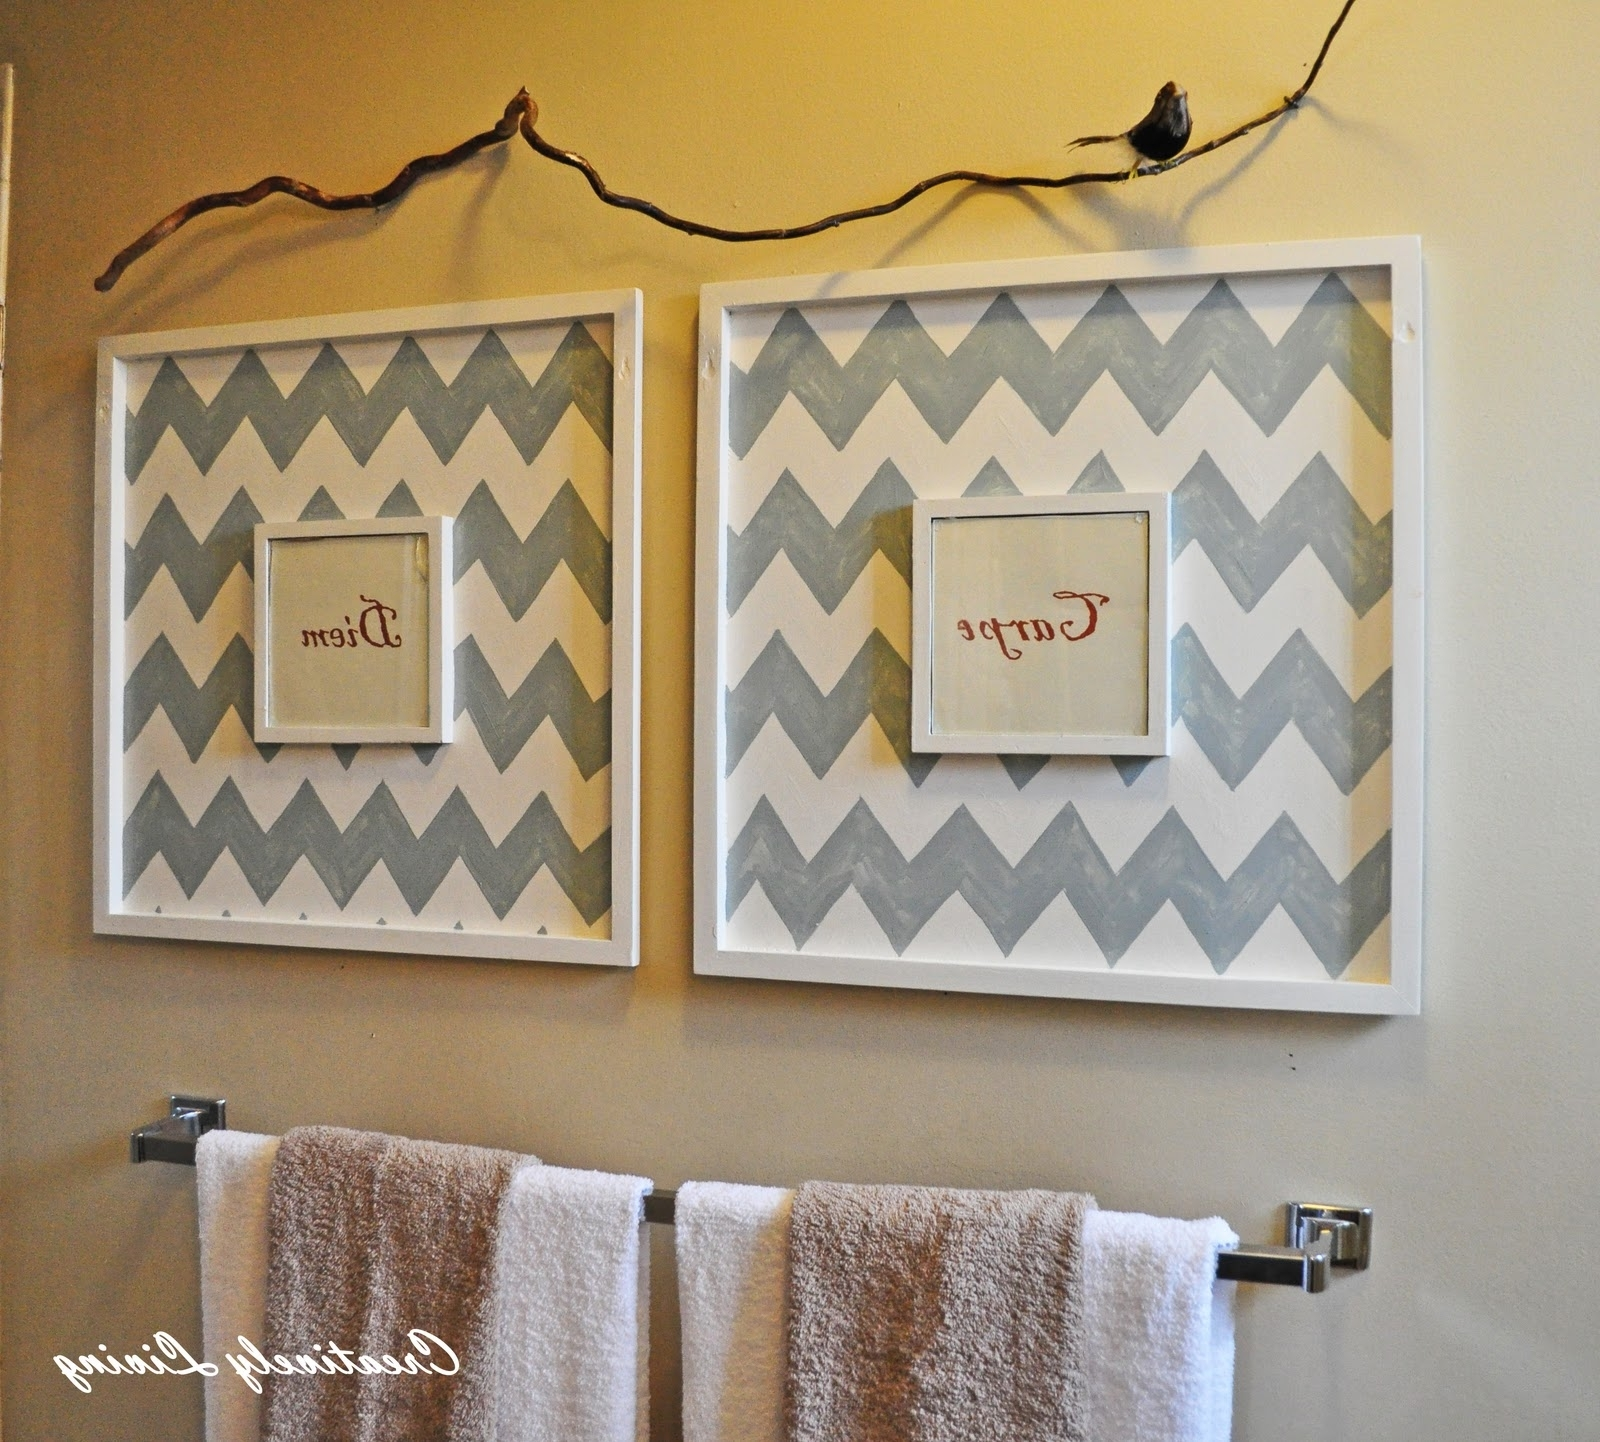 Bathroom Wall Art, Walls And Frames Ideas With Preferred Bath Wall Art (View 6 of 15)